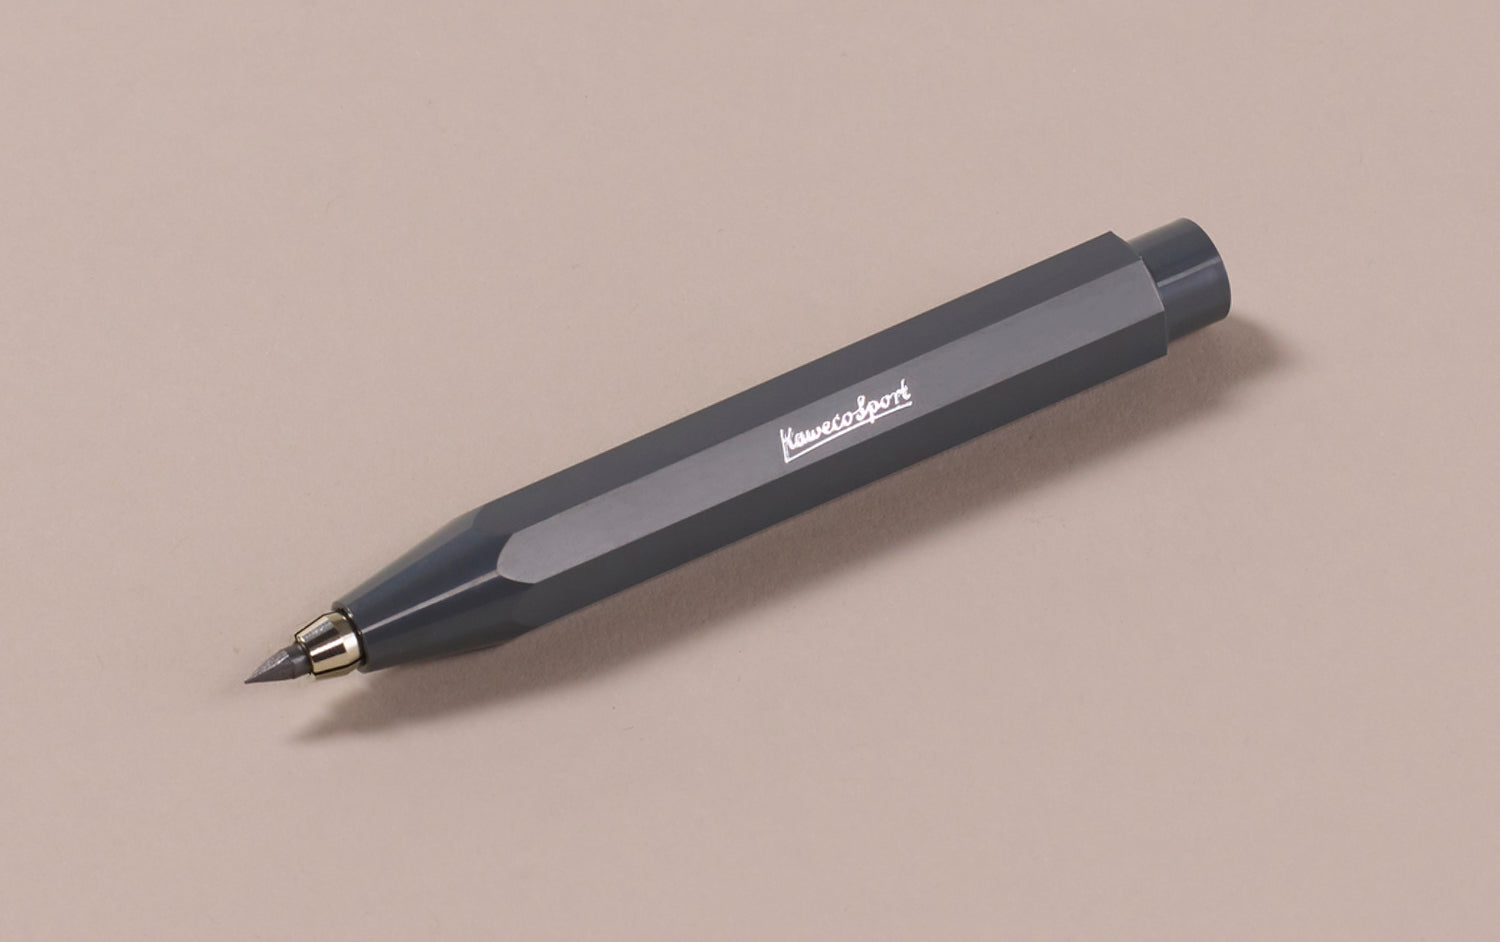 Grey Kaweco Skyline 3.2mm Clutch Pencil